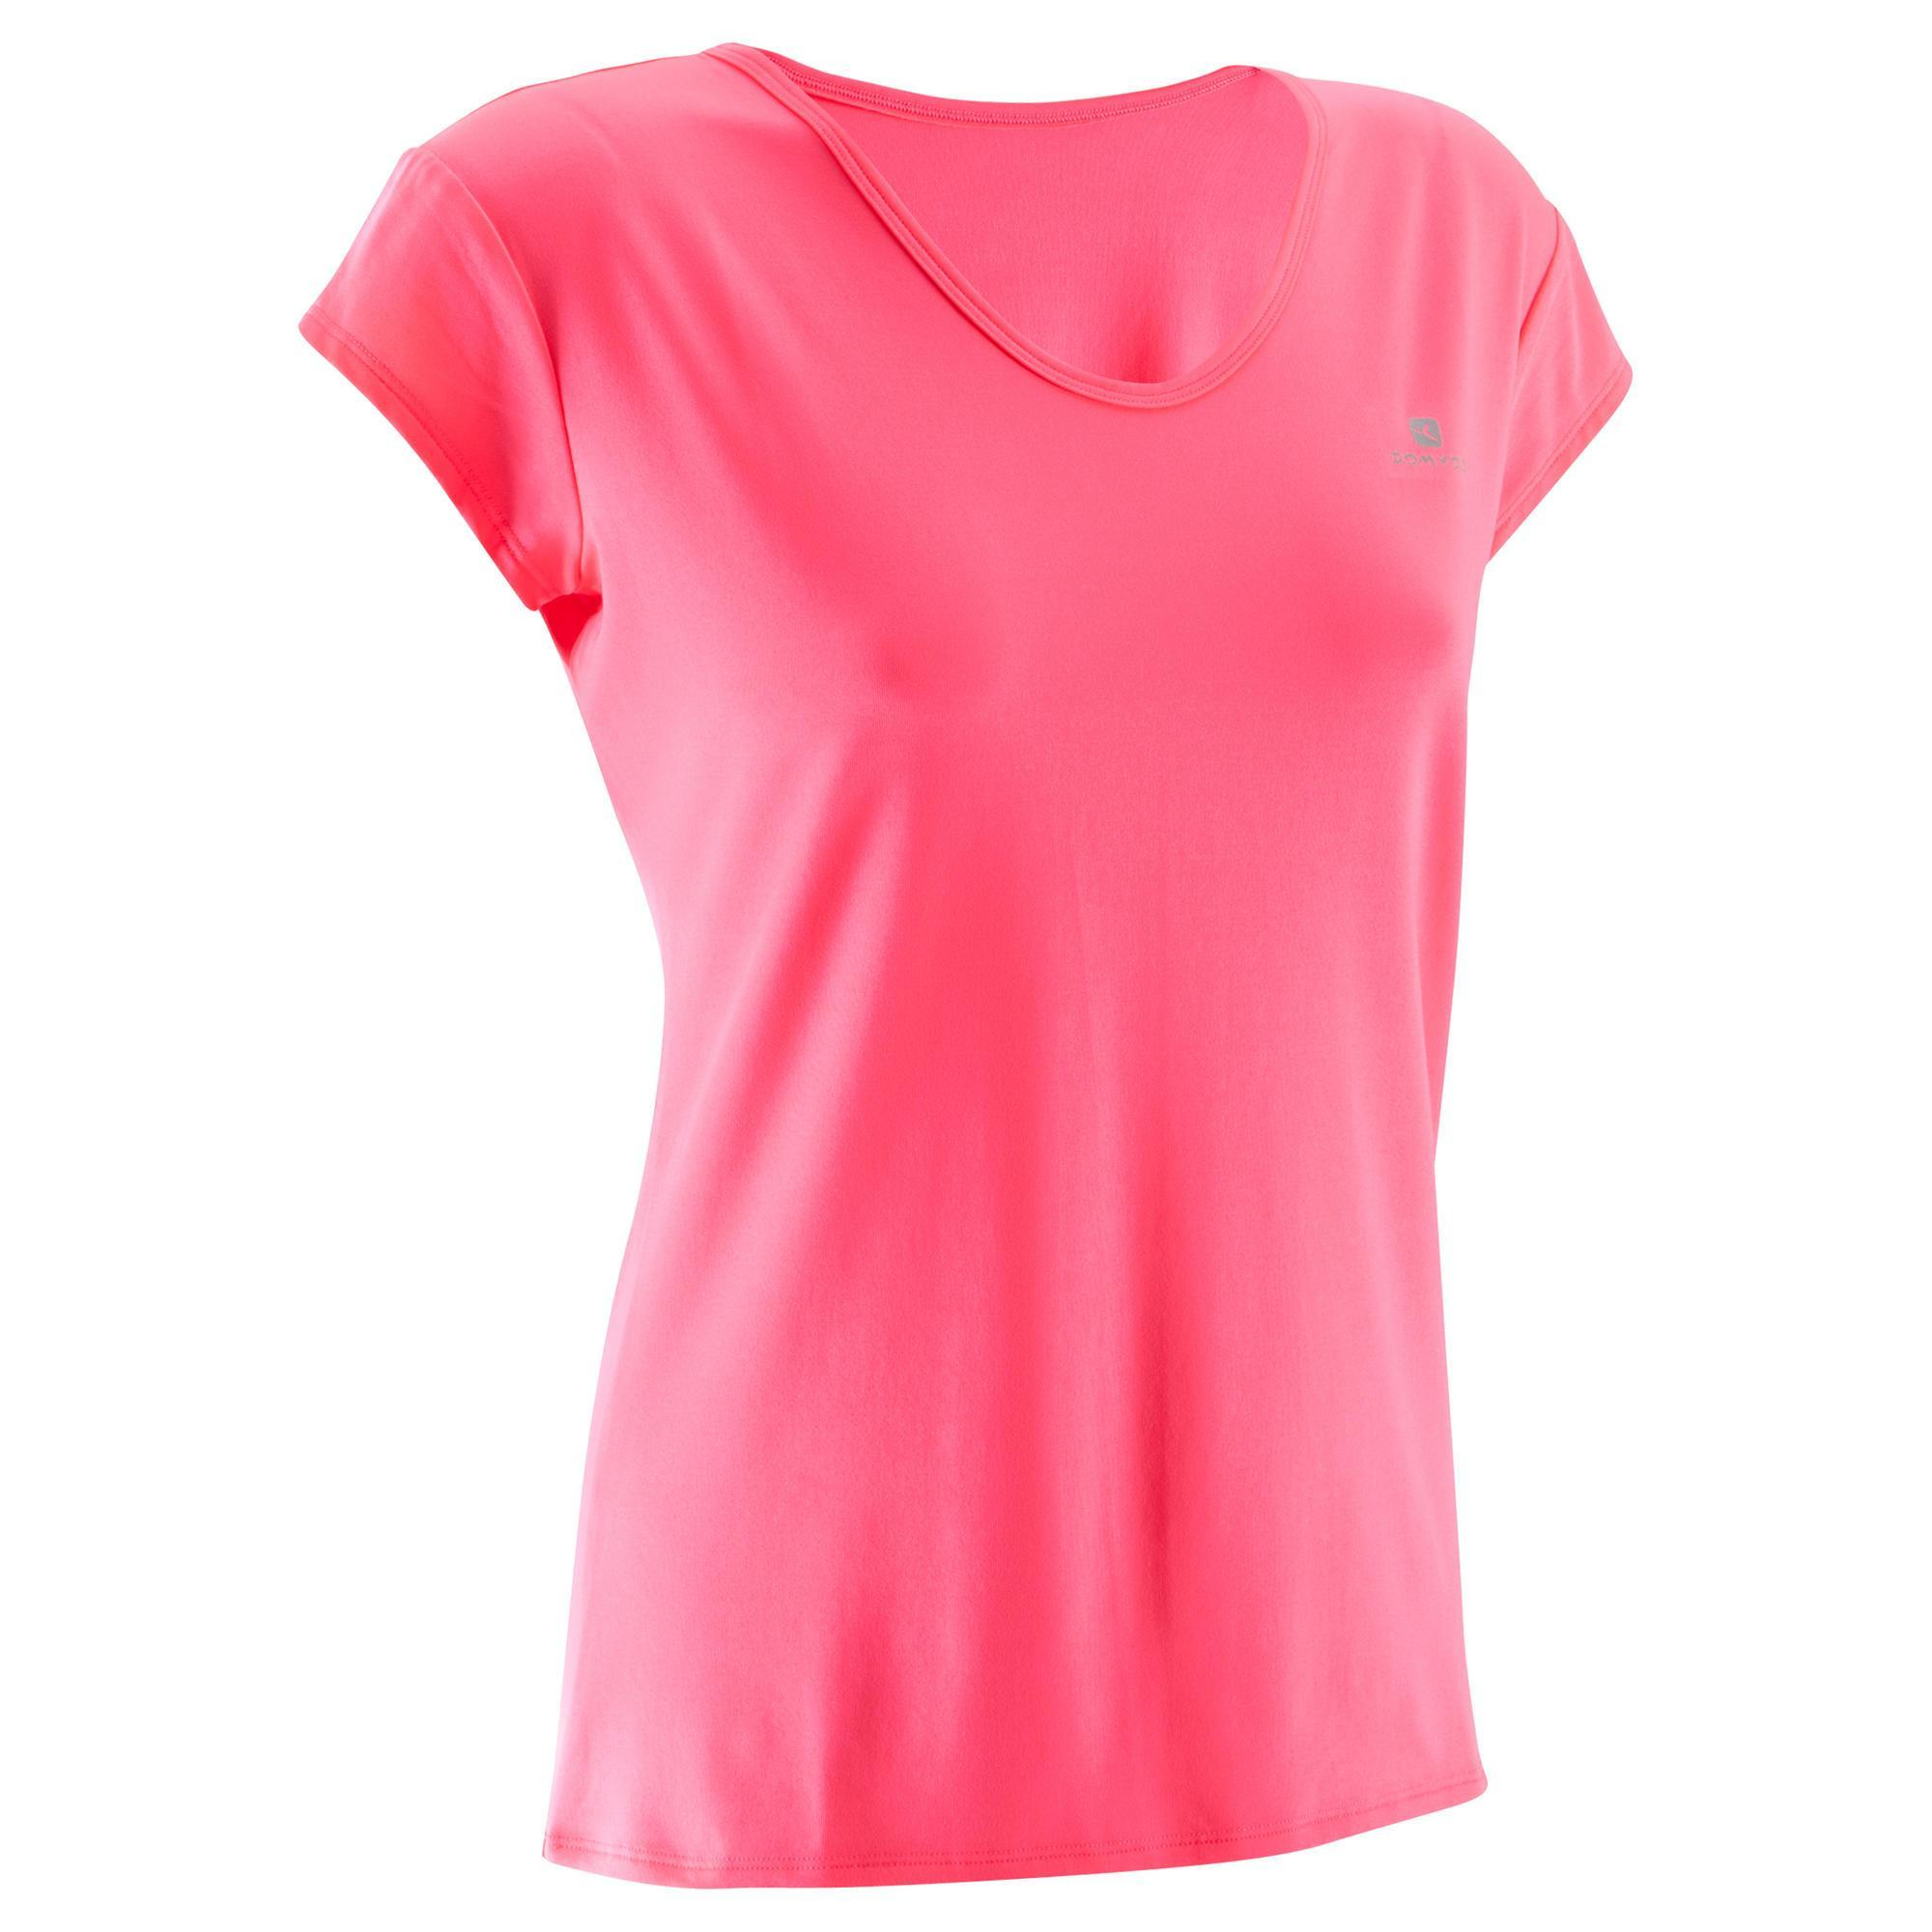 t shirt fitness cardio femme rose fluo 100 domyos domyos by decathlon. Black Bedroom Furniture Sets. Home Design Ideas